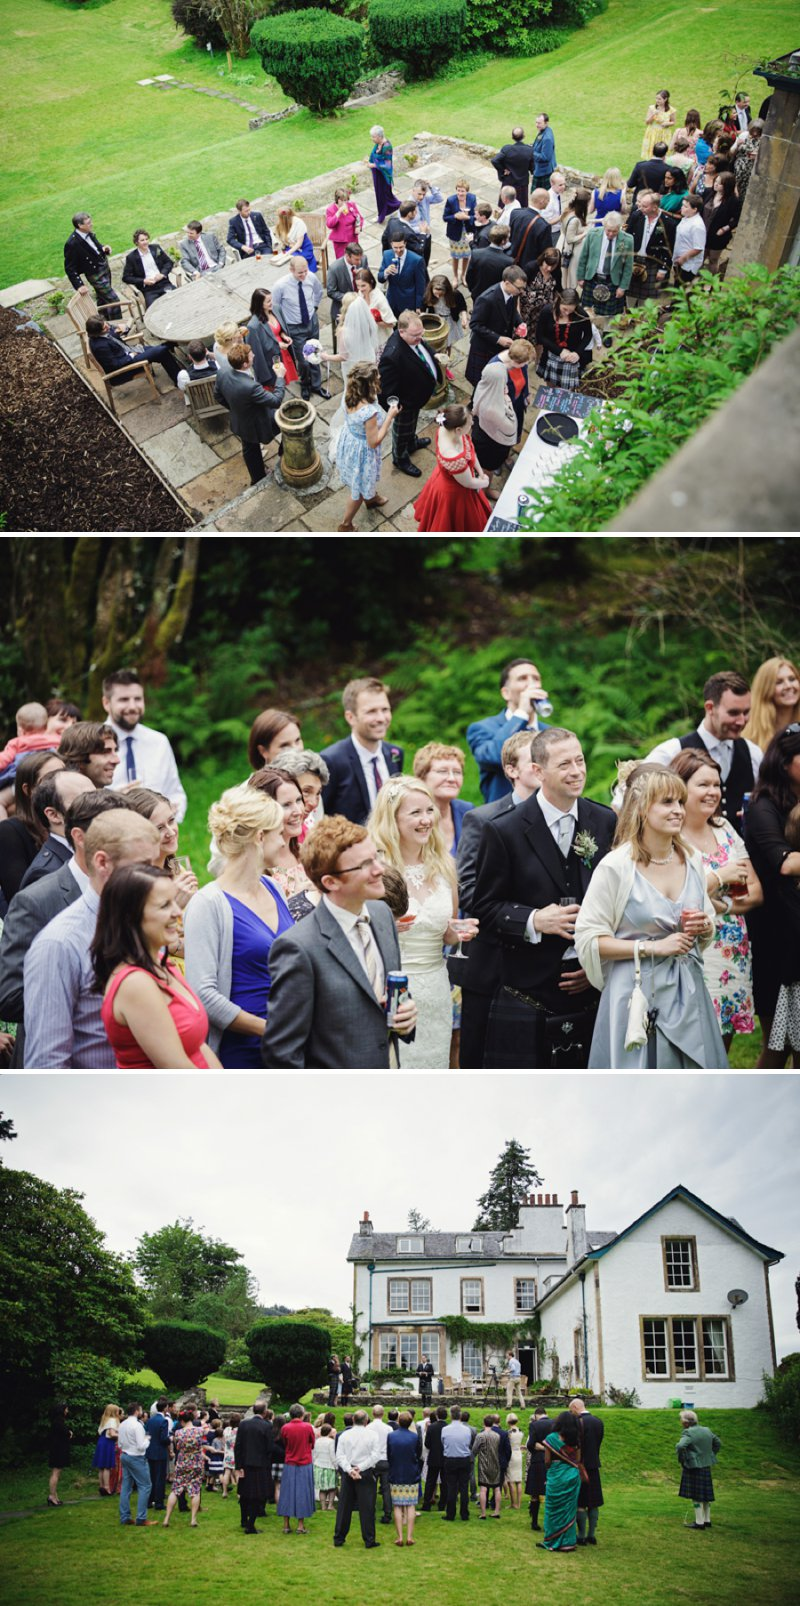 Rustic Scottish Beach Wedding With Bride In Justin Alexander And Vivien Of Holloway And Groom In Kilt With Bridesmaids In 50s Style Gowns With A Traditional Scottish Ceilidh 9